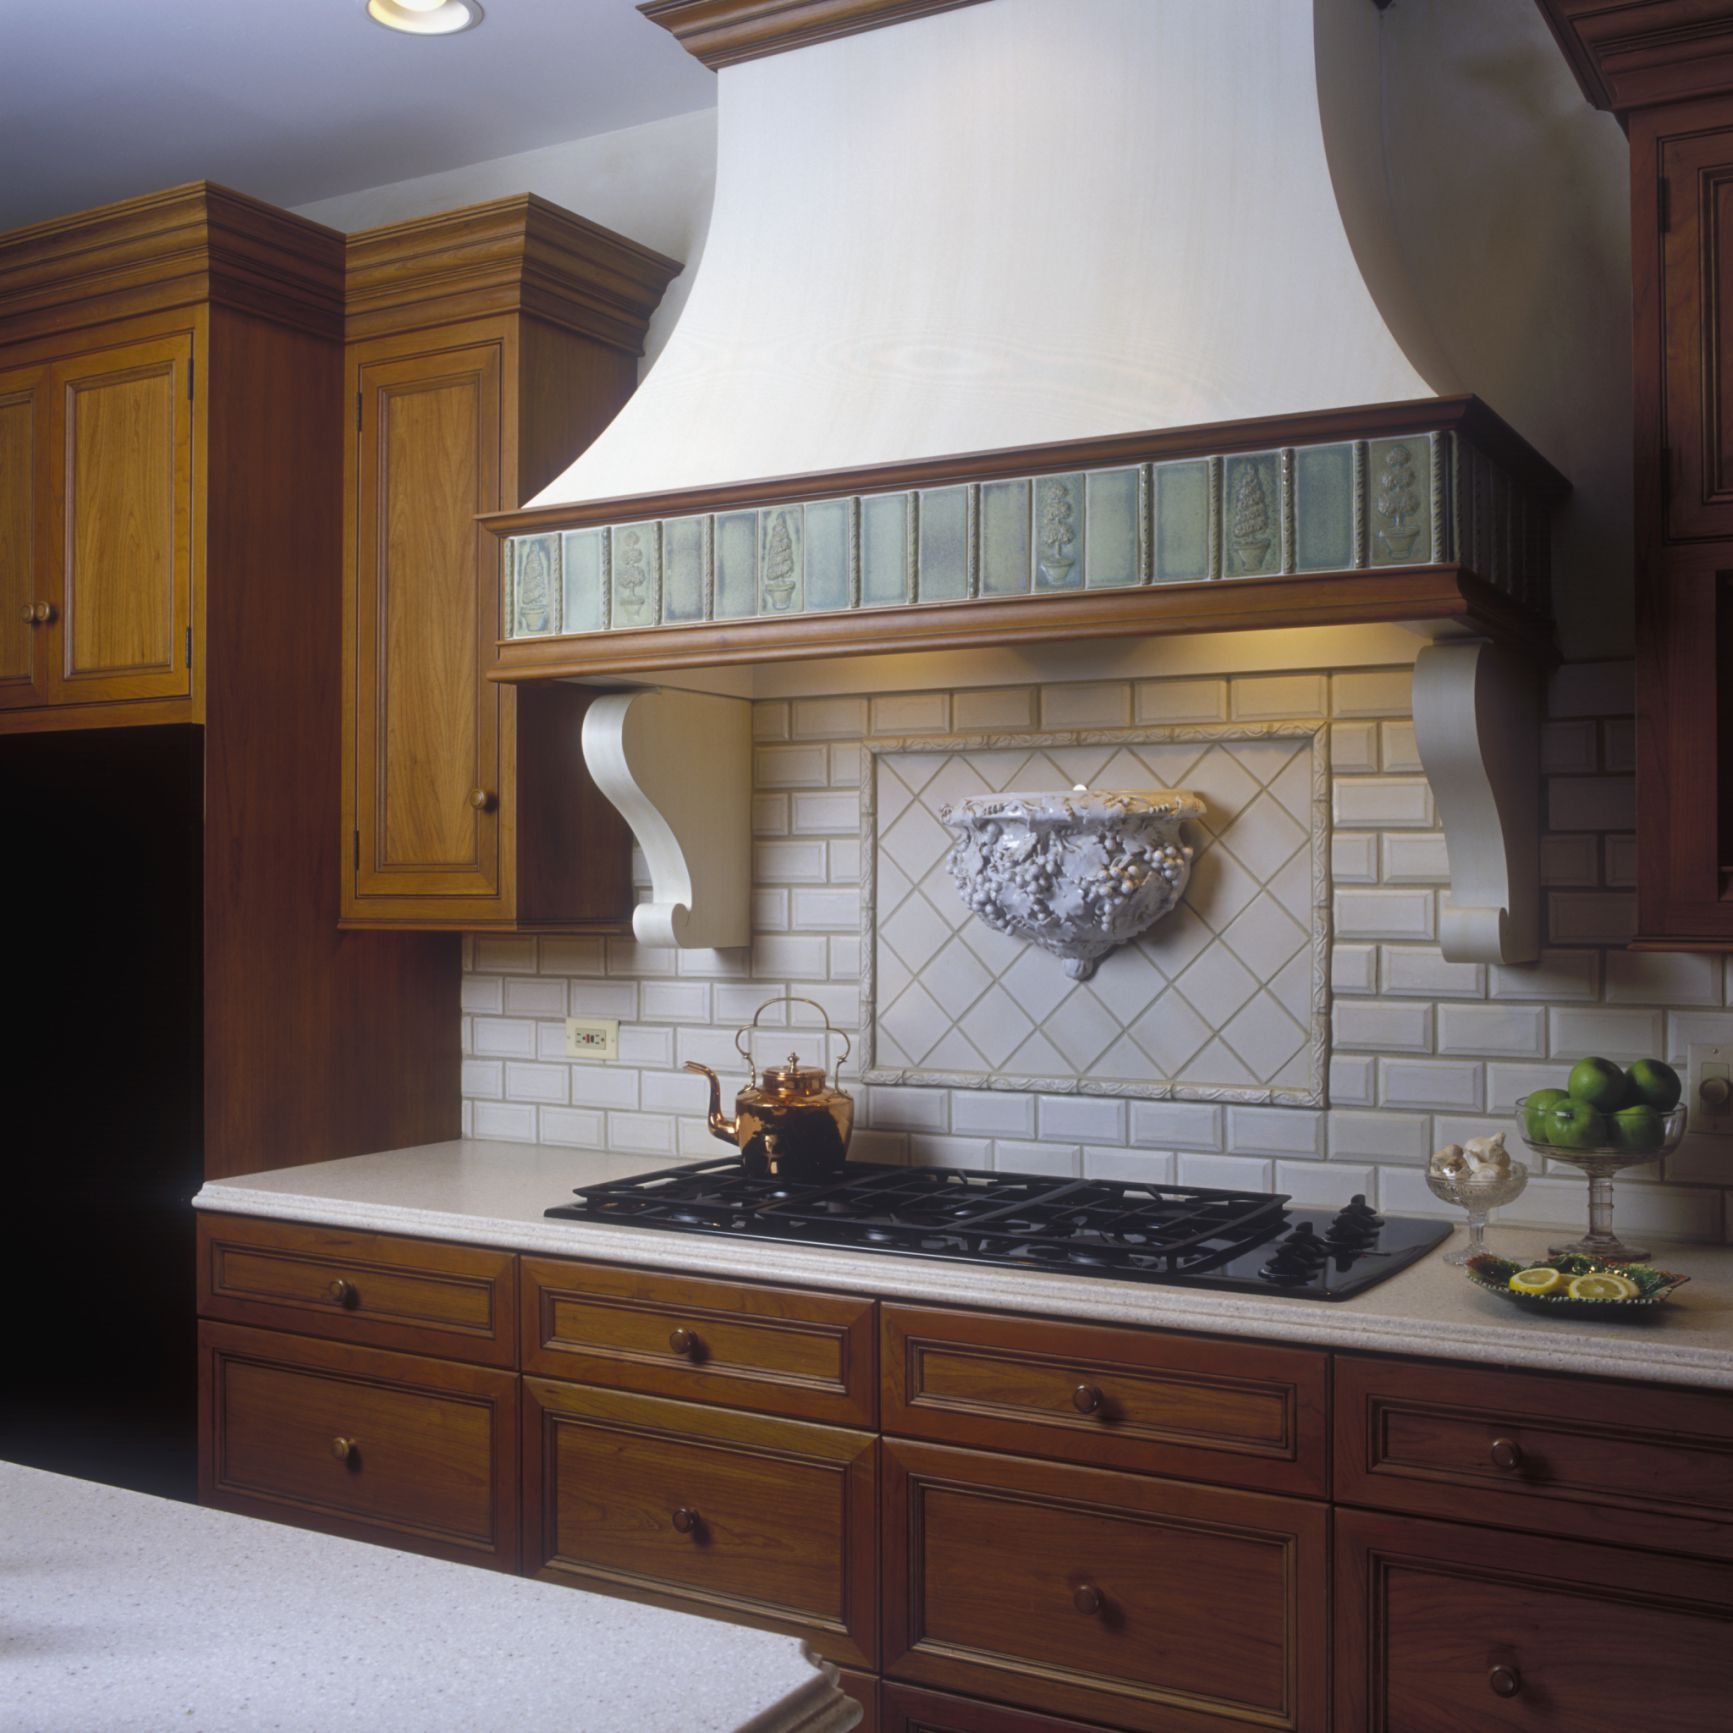 Tuscan Style Subway Tile In Kitchen 56a49fe73df78cf ffb